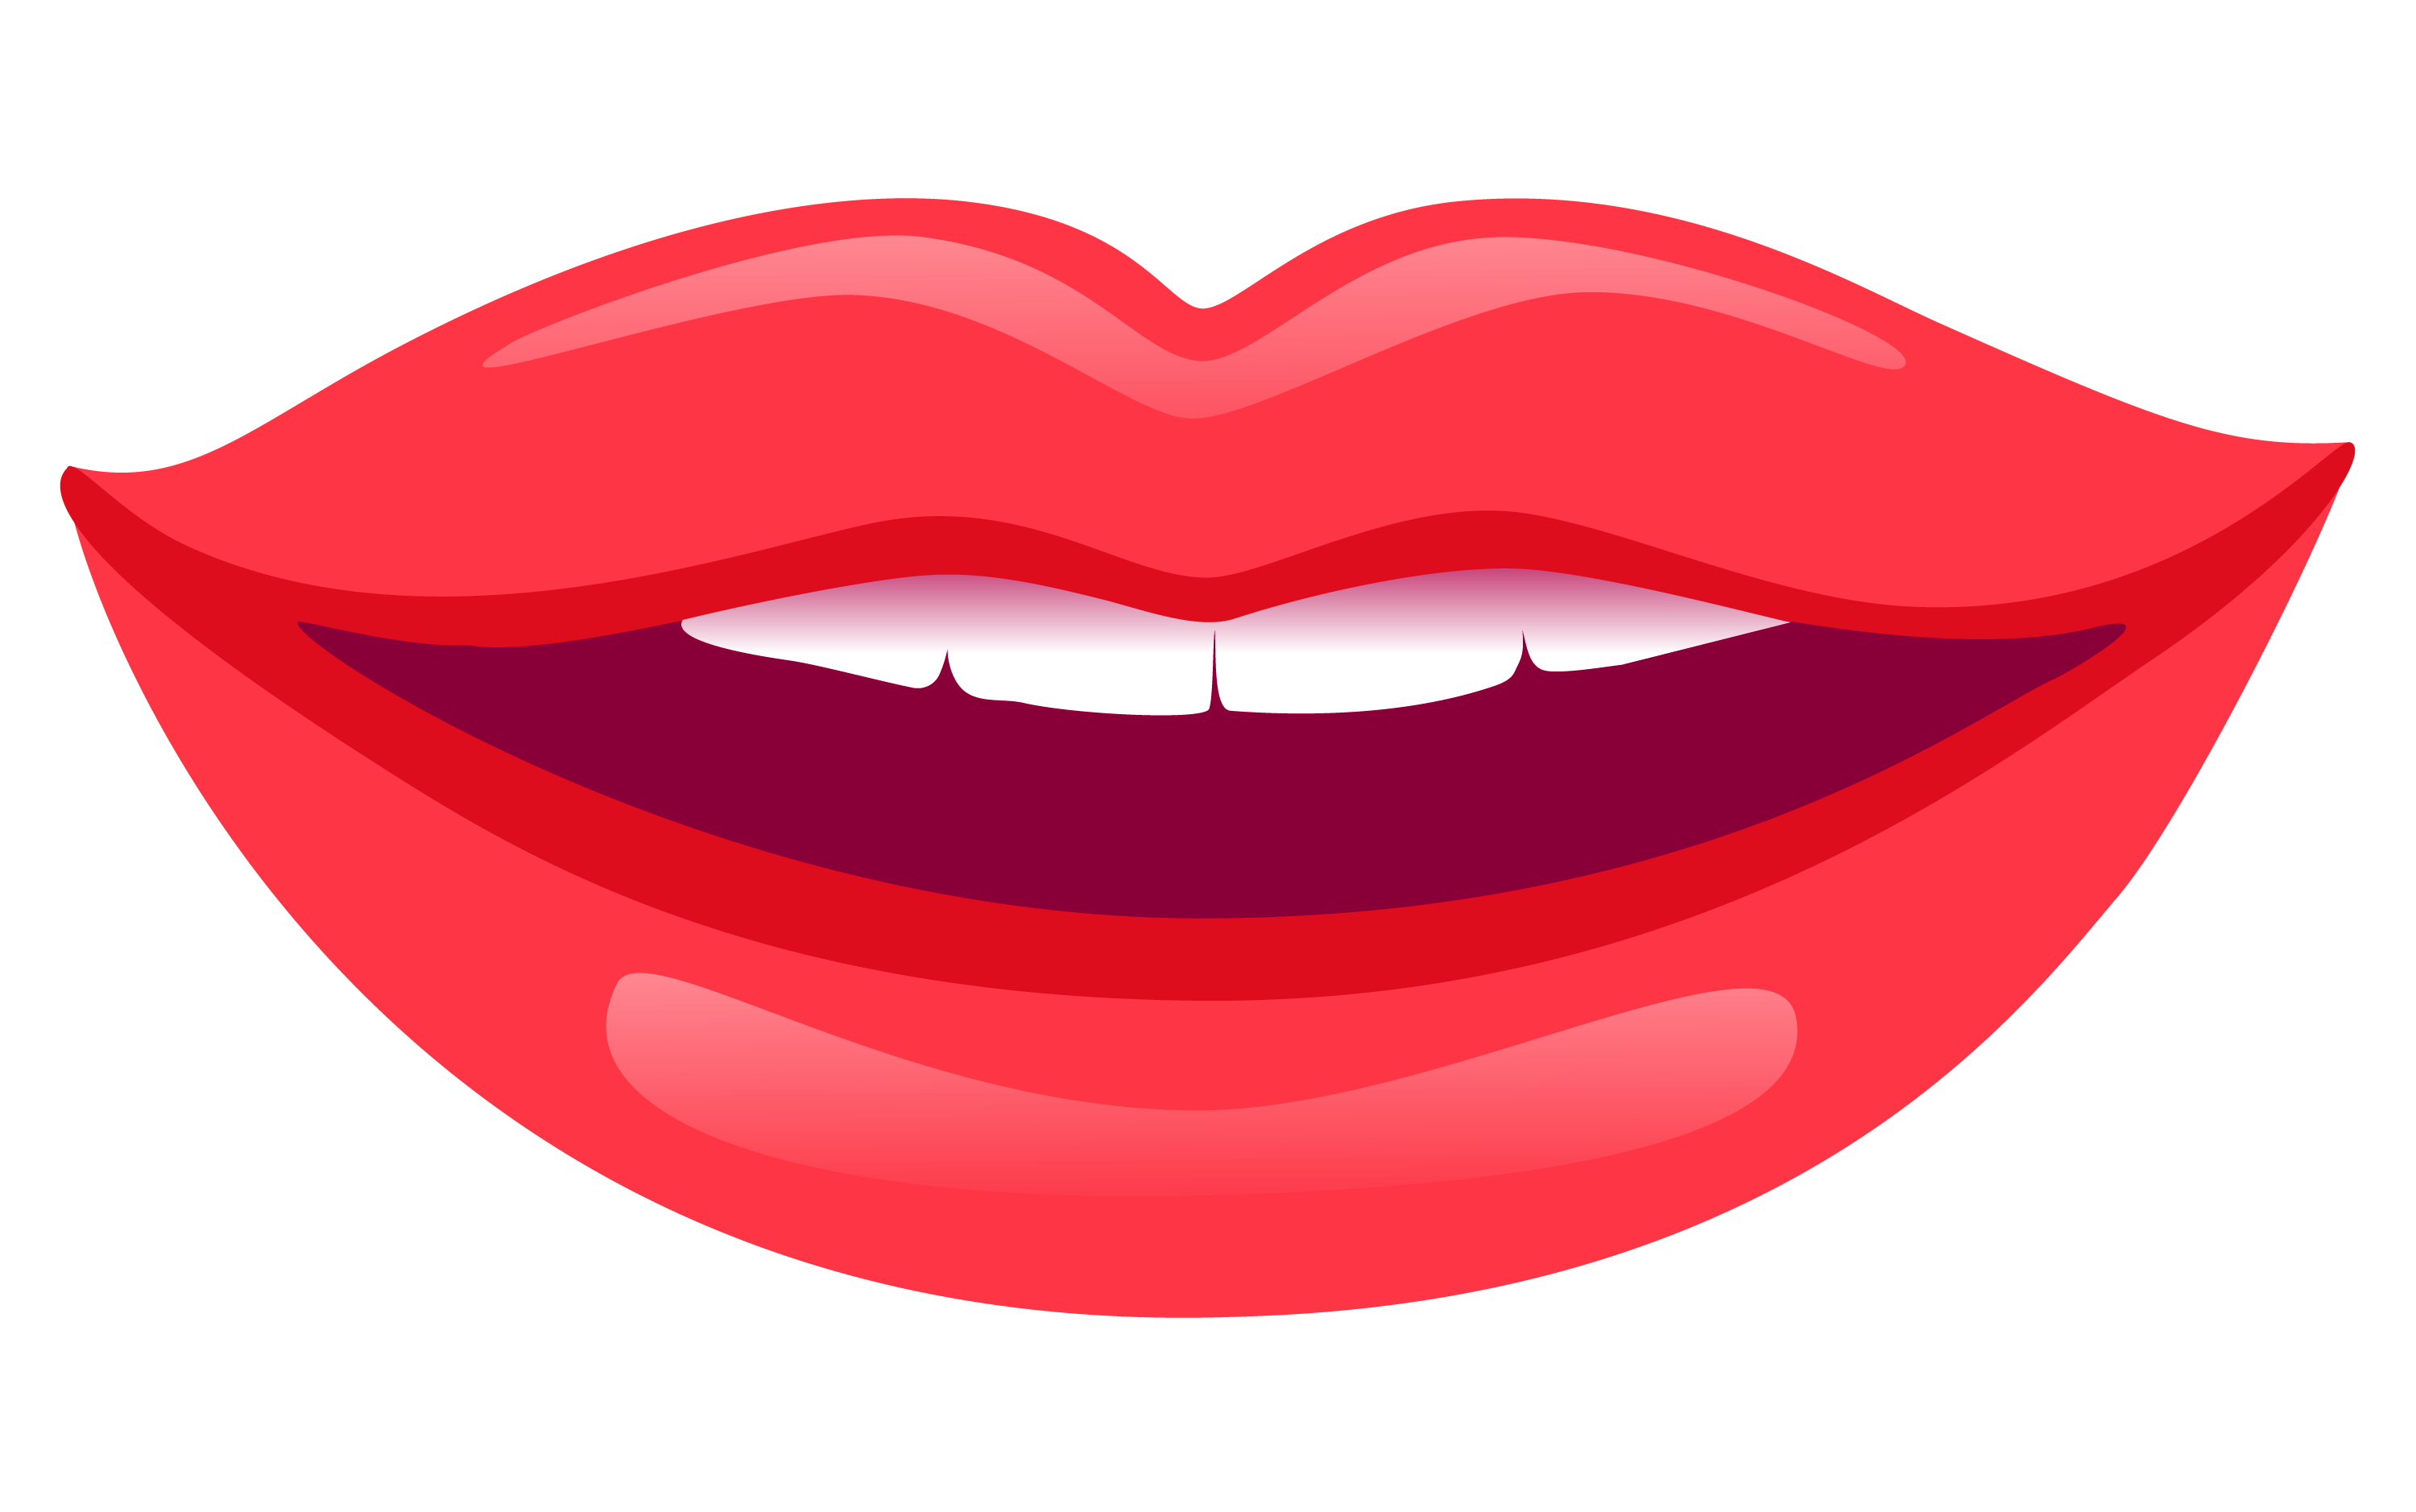 Lips PNG Transparent Image - Smiling Lips PNG HD